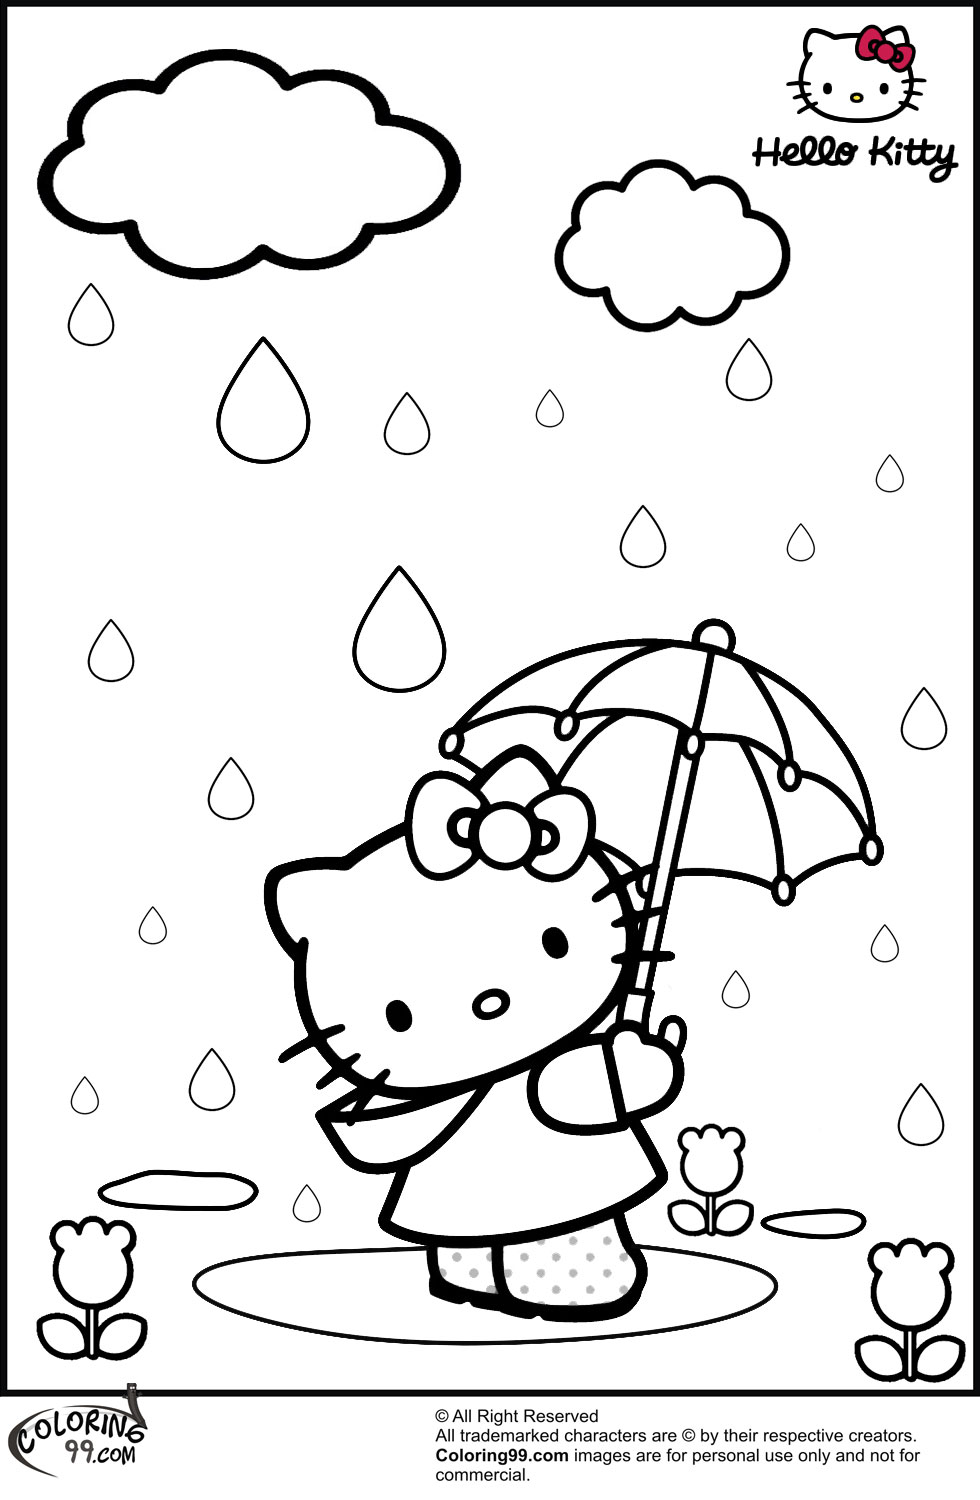 kitty hello coloring pages hello kitty coloring pages the sun flower pages kitty pages coloring hello